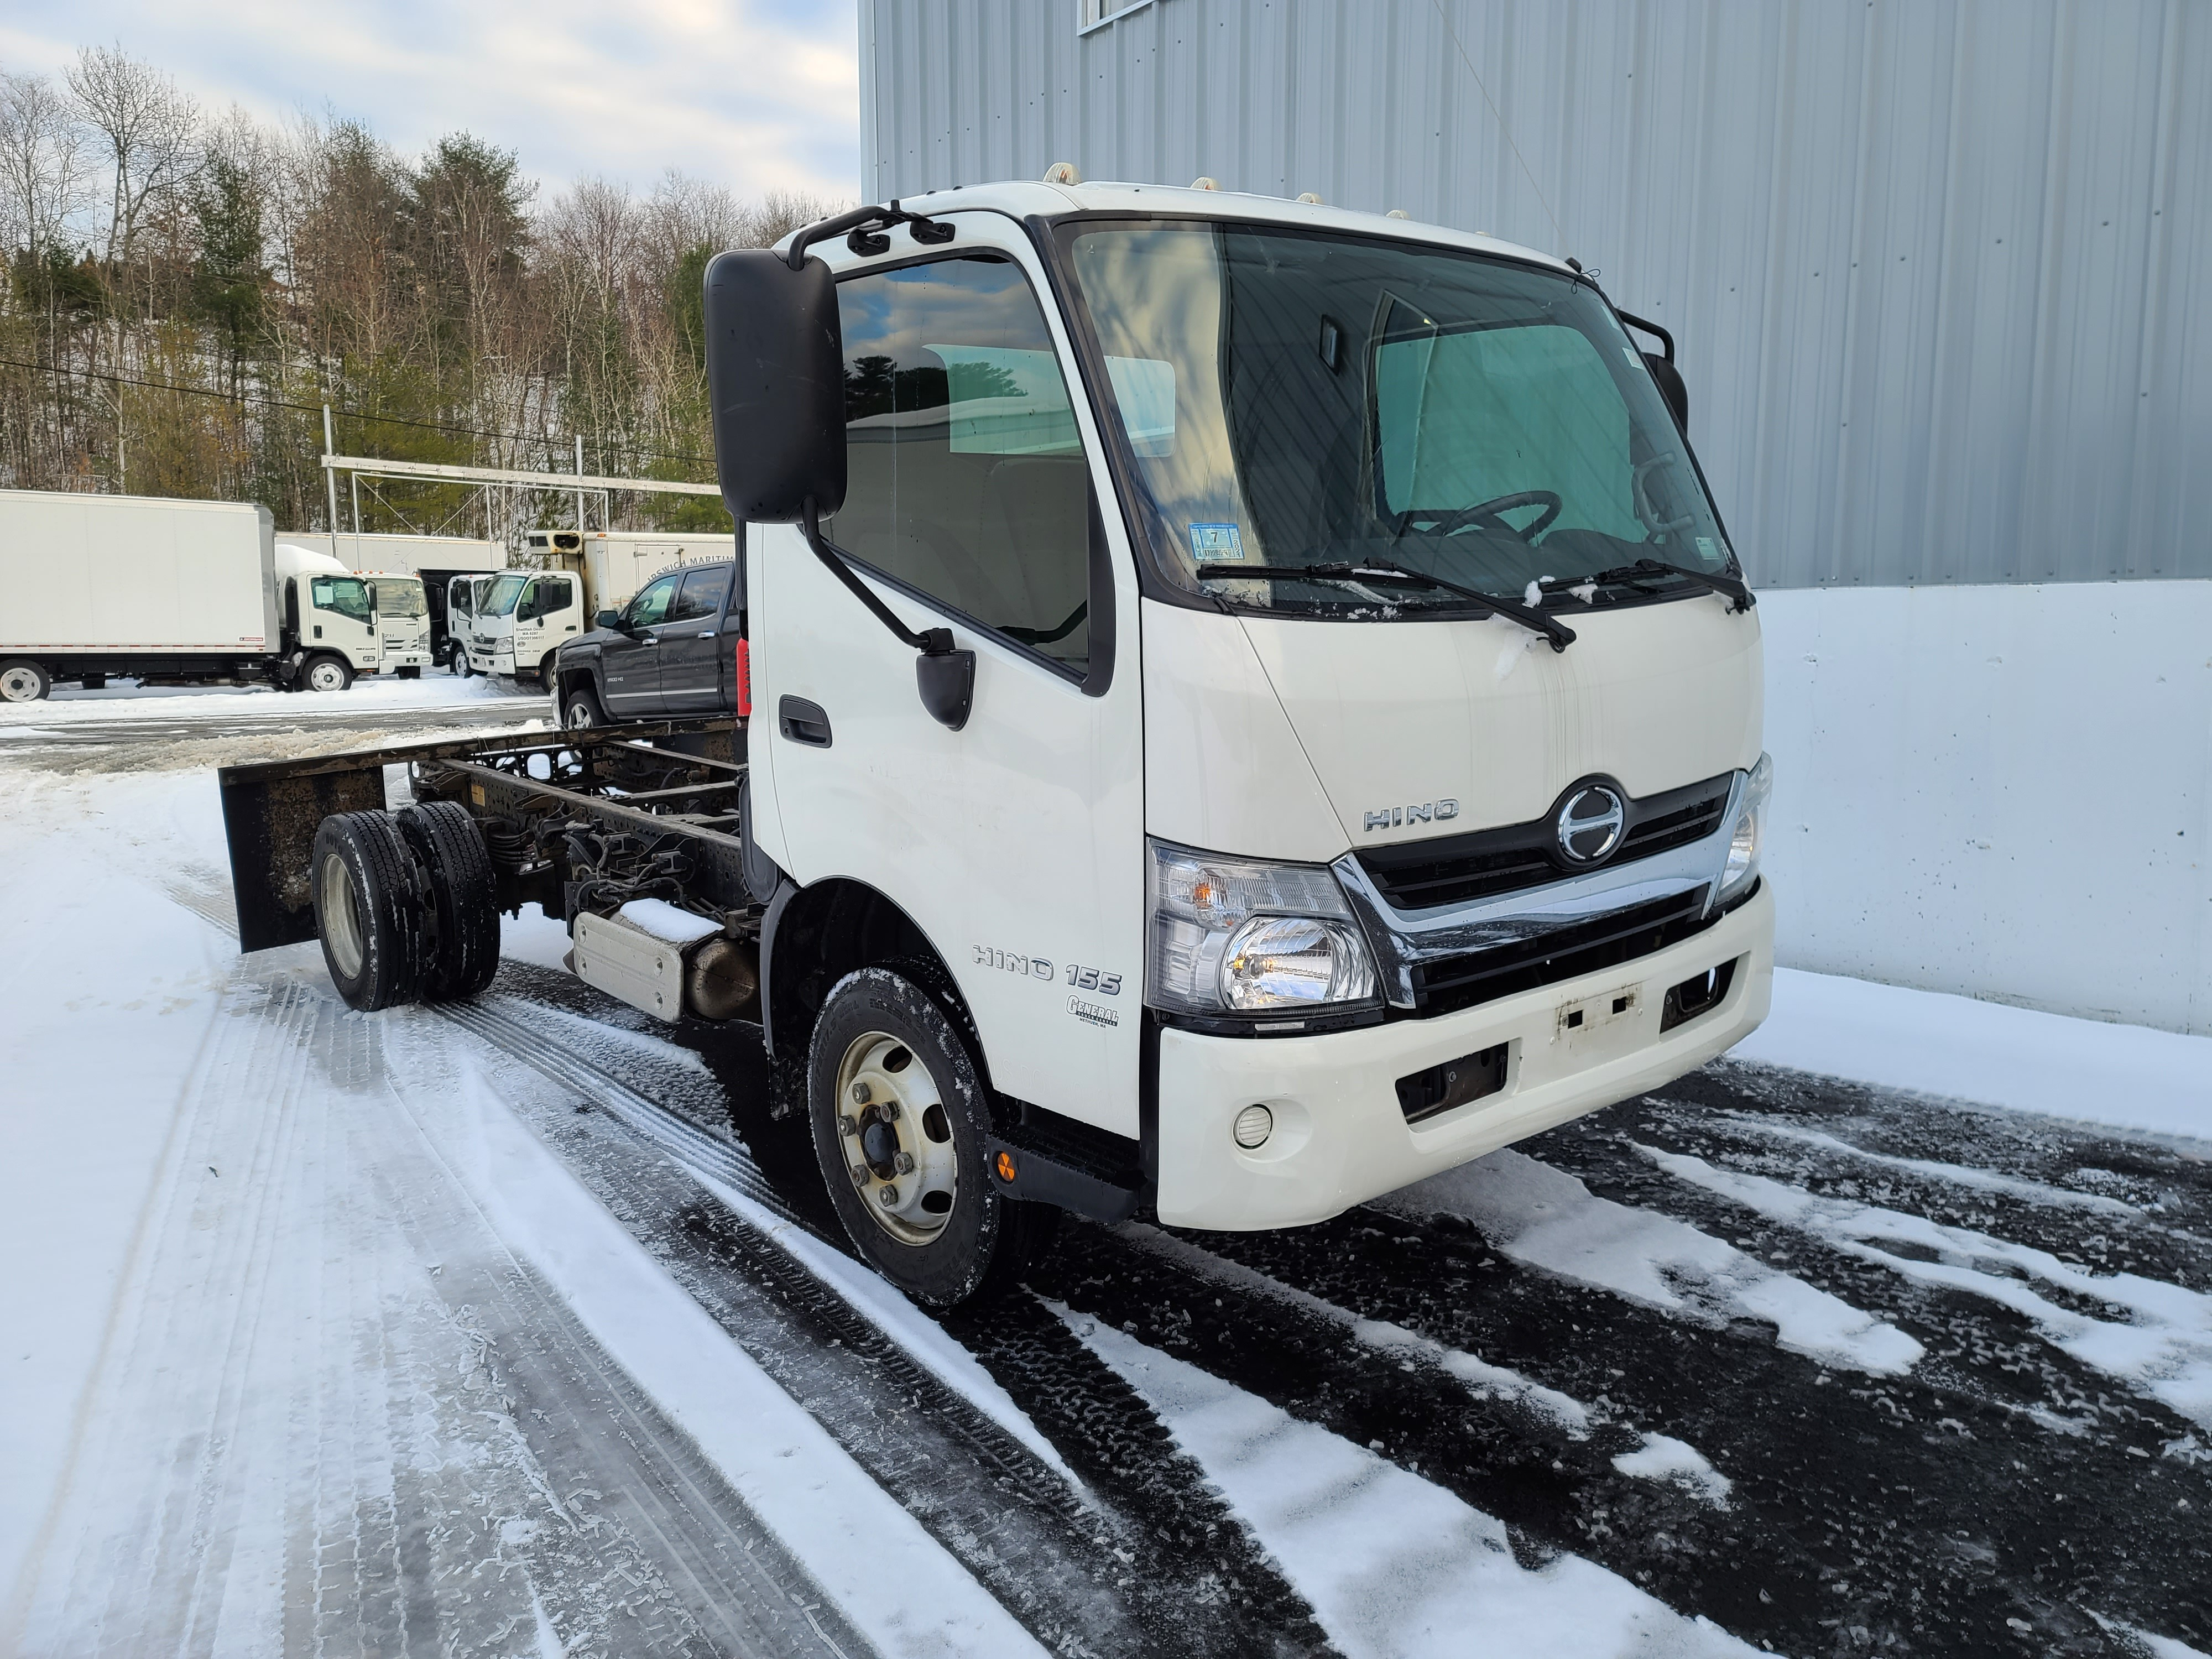 Used, 2016, Hino, 155, Cab / Chassis Trucks